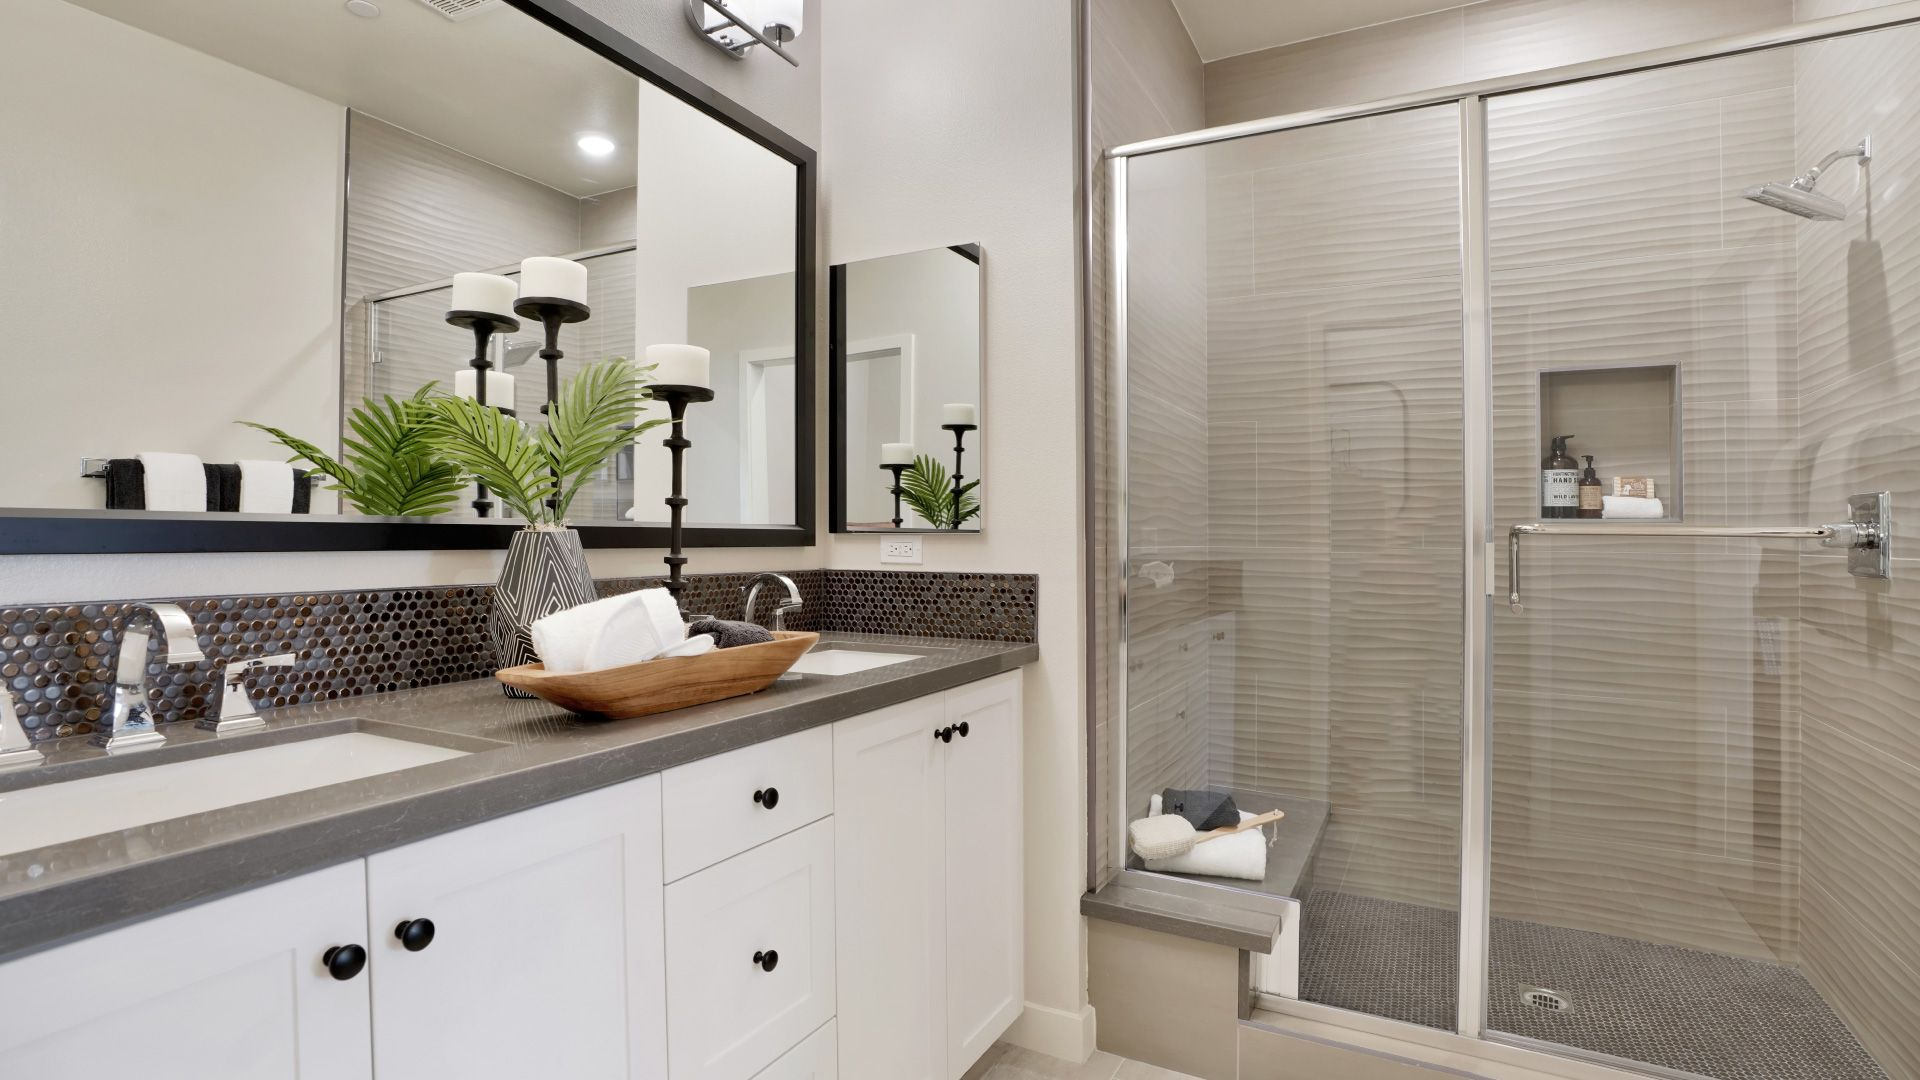 Bathroom featured in the Plan 1 By Melia Homes in Orange County, CA